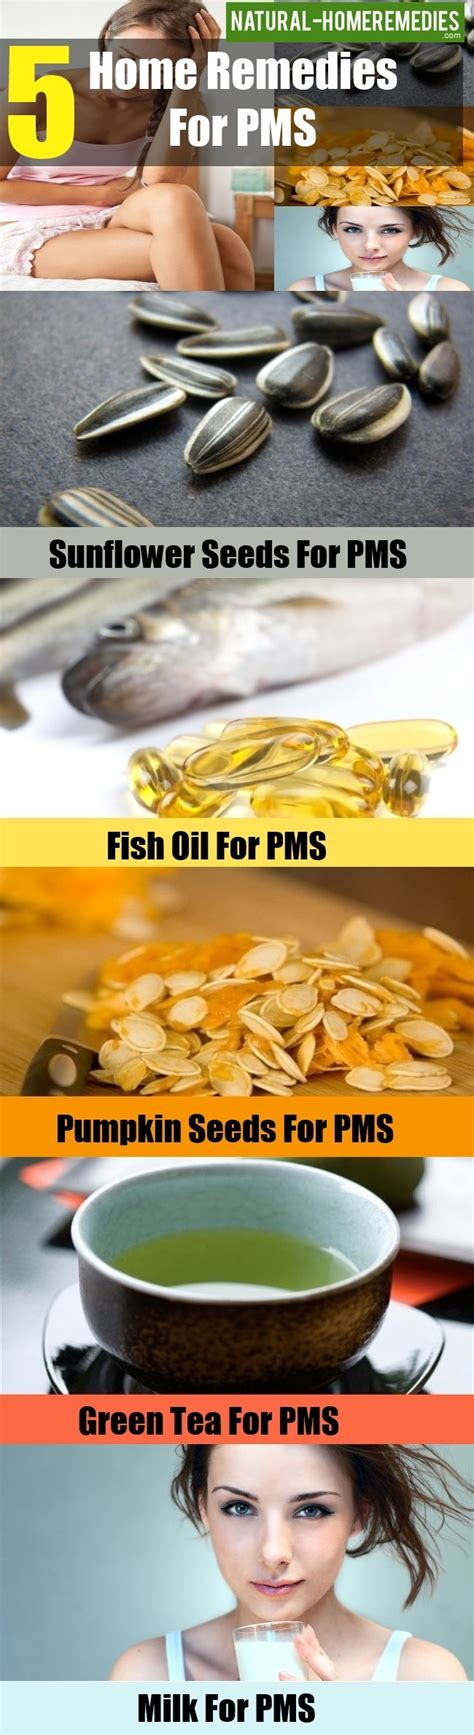 best treatment for pms 5 home remedies for pms treatments cure for